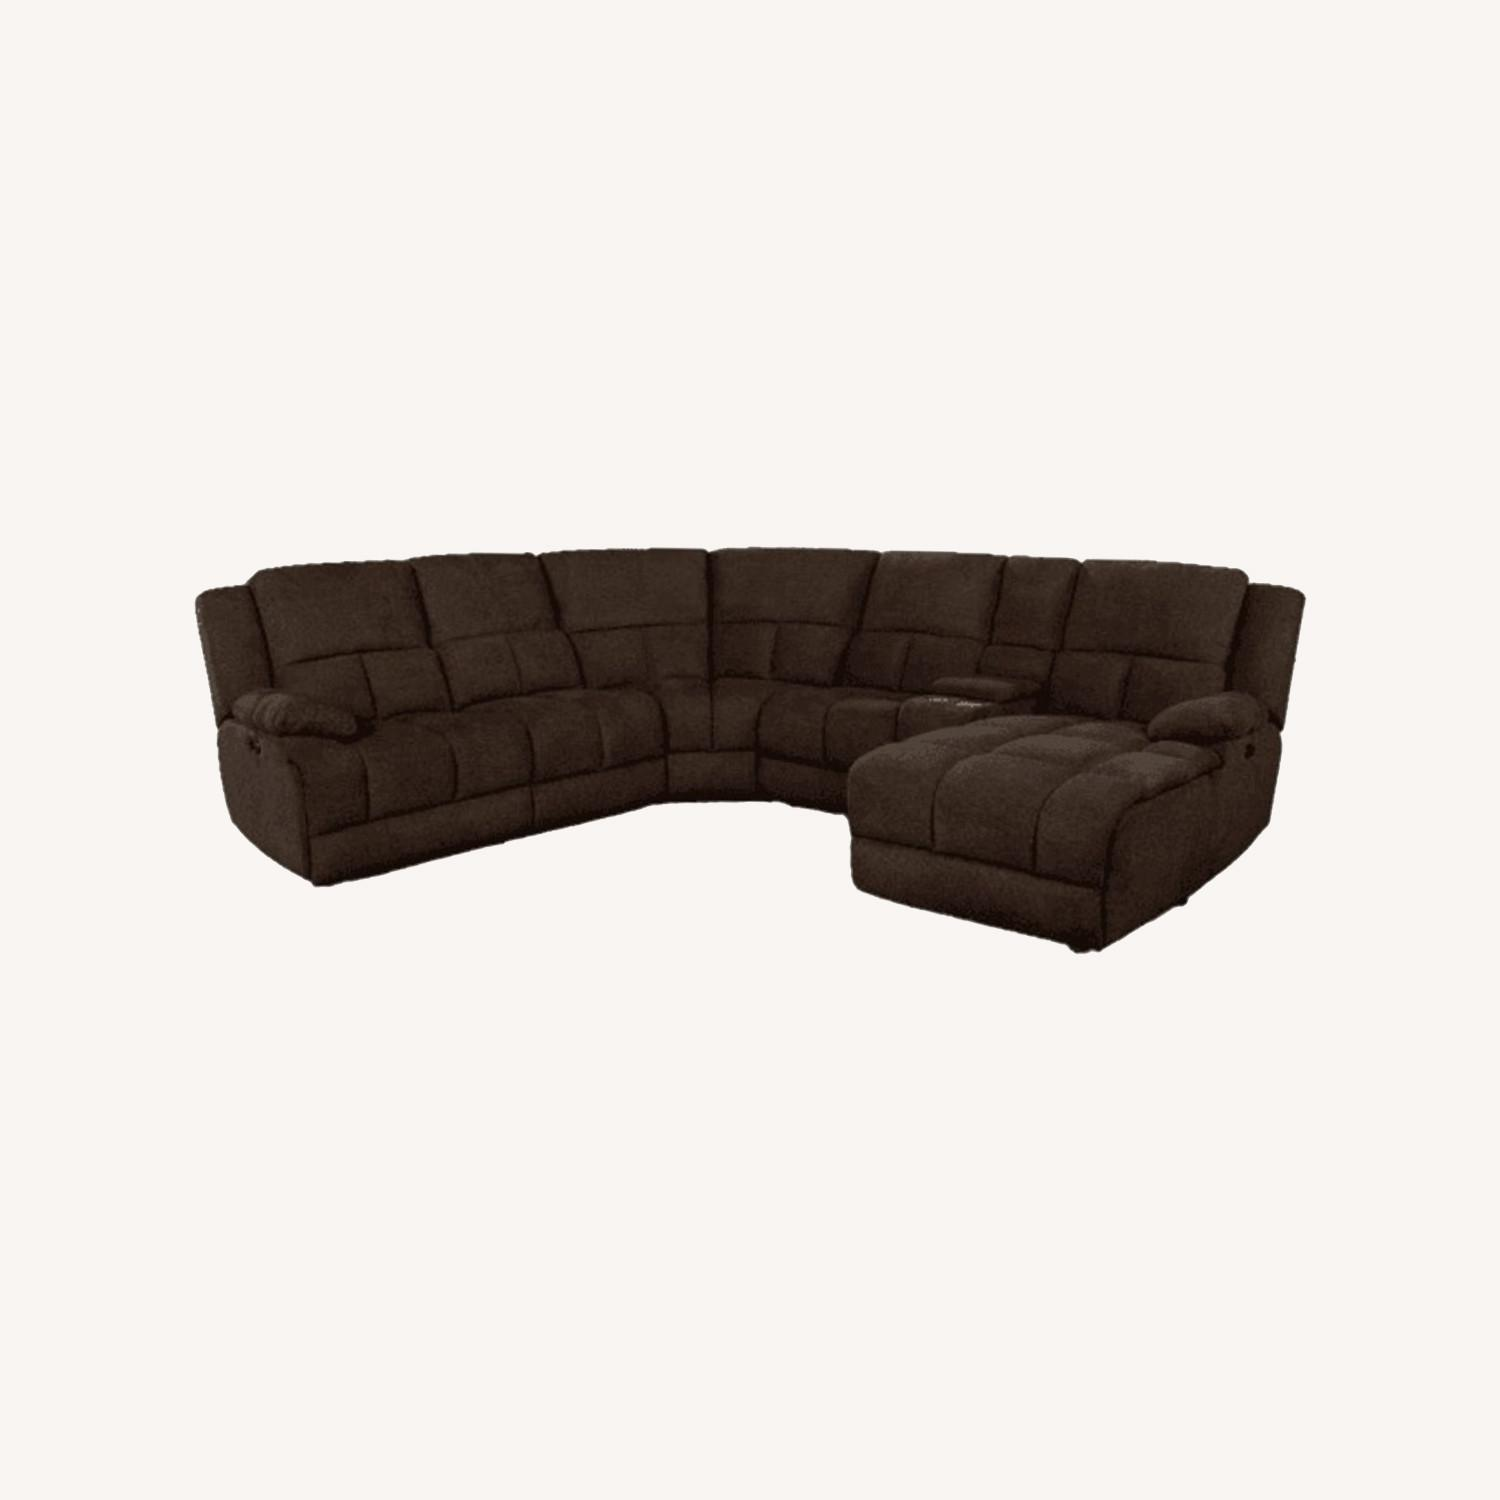 6Piece Power Sectional In Brown Performance Fabric - image-14